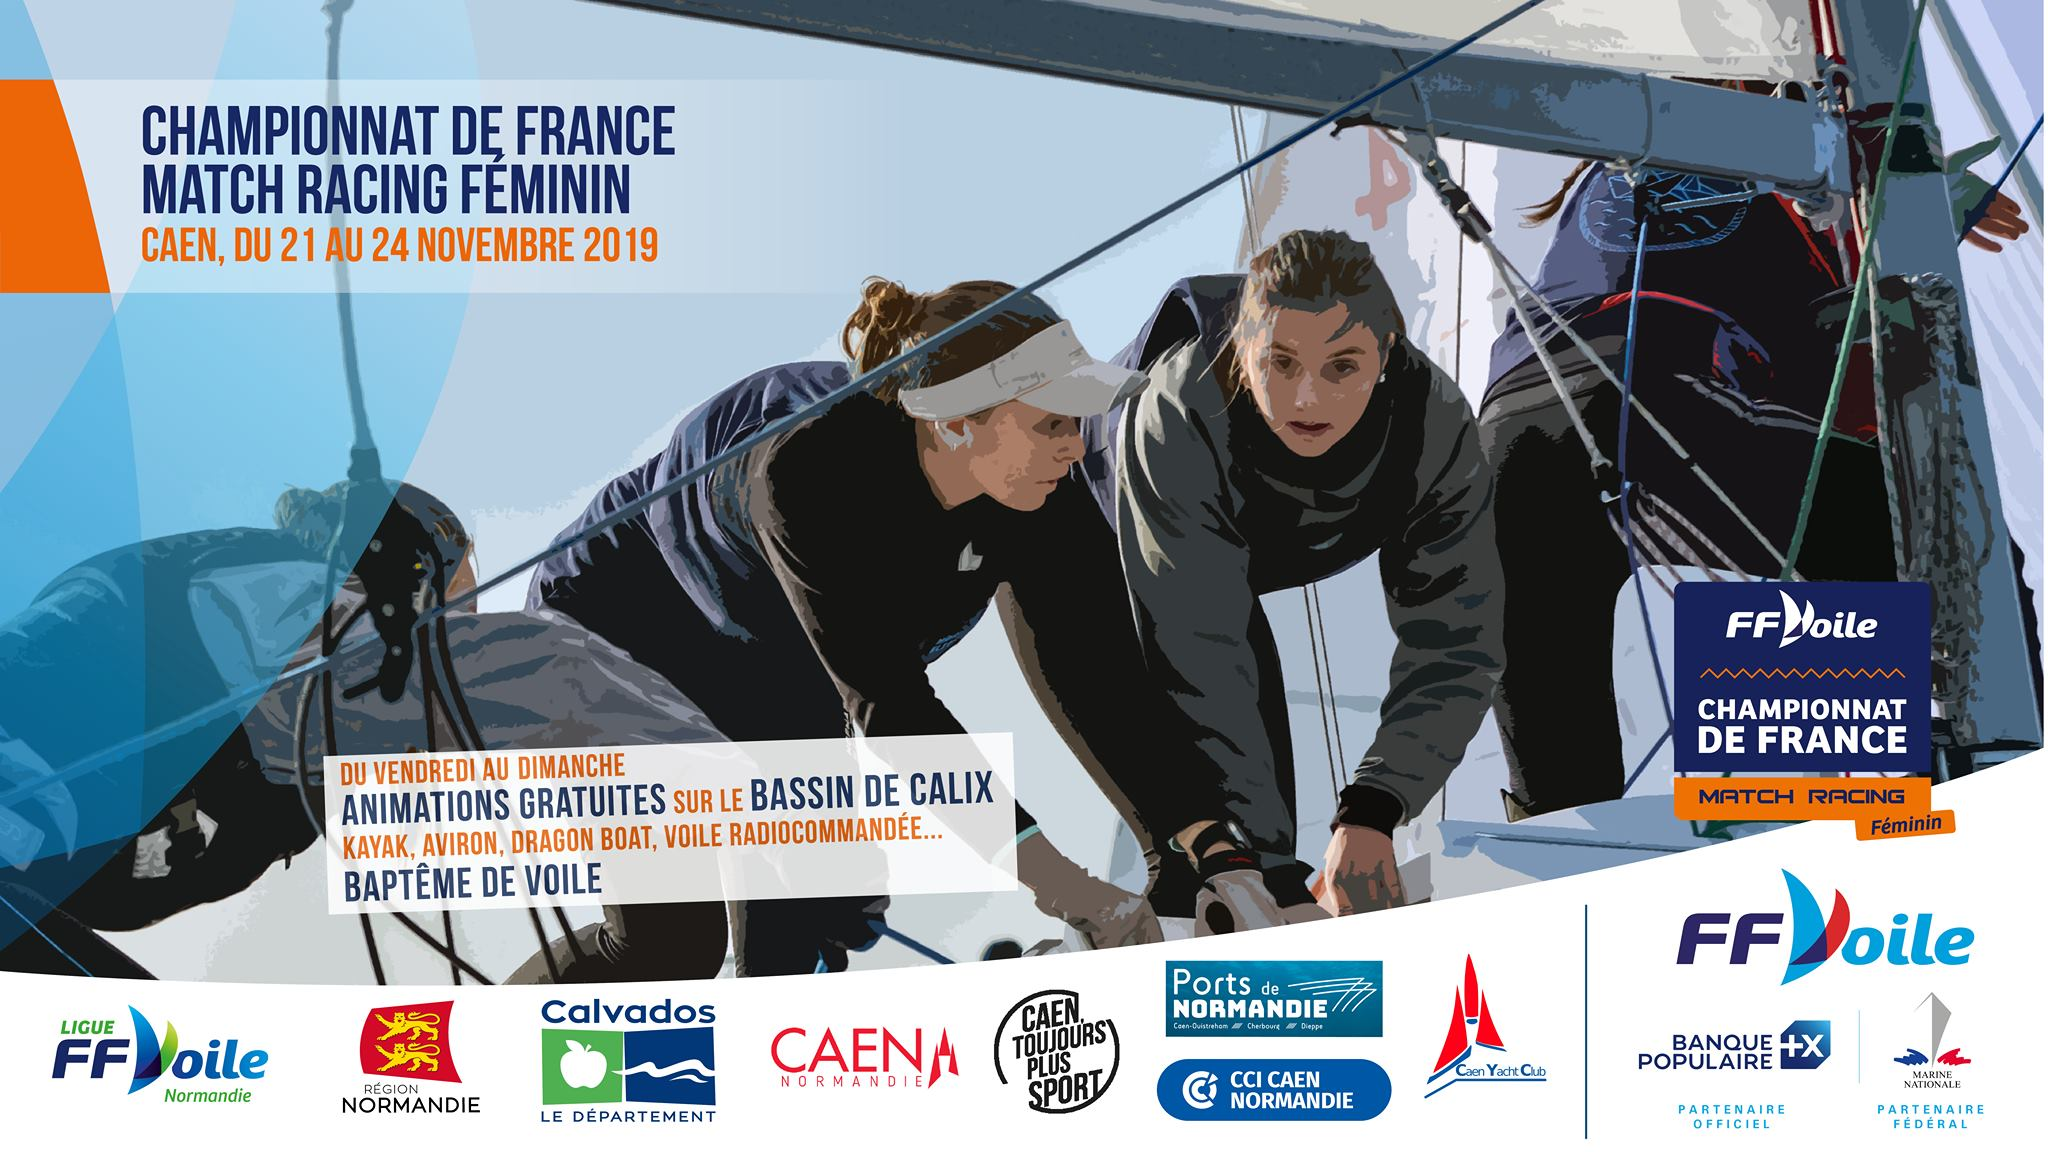 Championnat de France de Match Racing Féminin